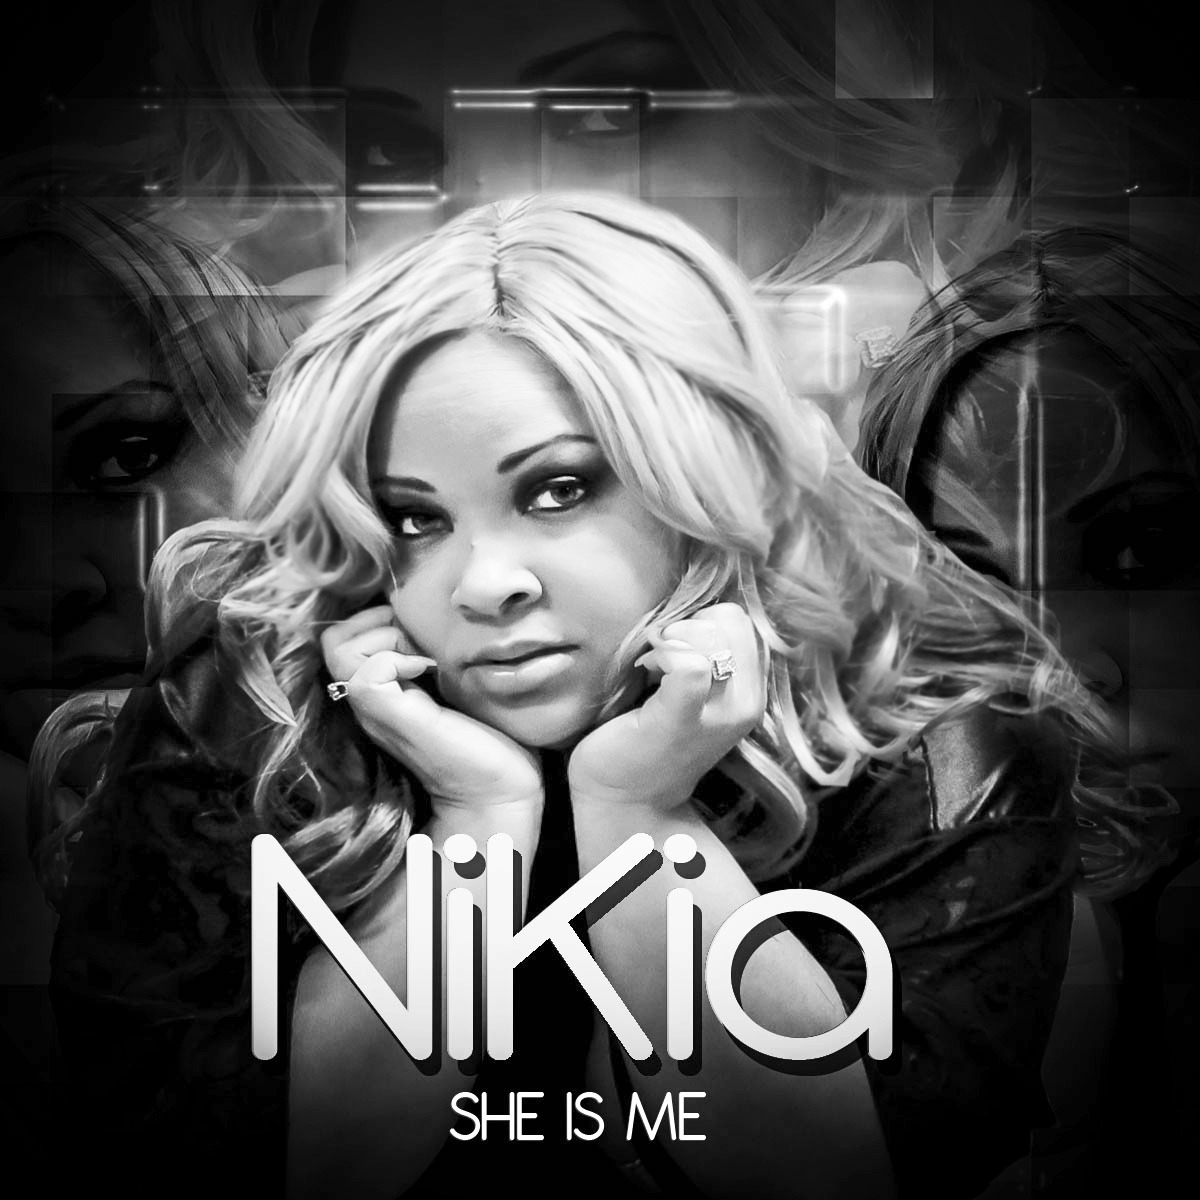 1460372826_she_is_me_nakia_album_FRONT_COVER_edited